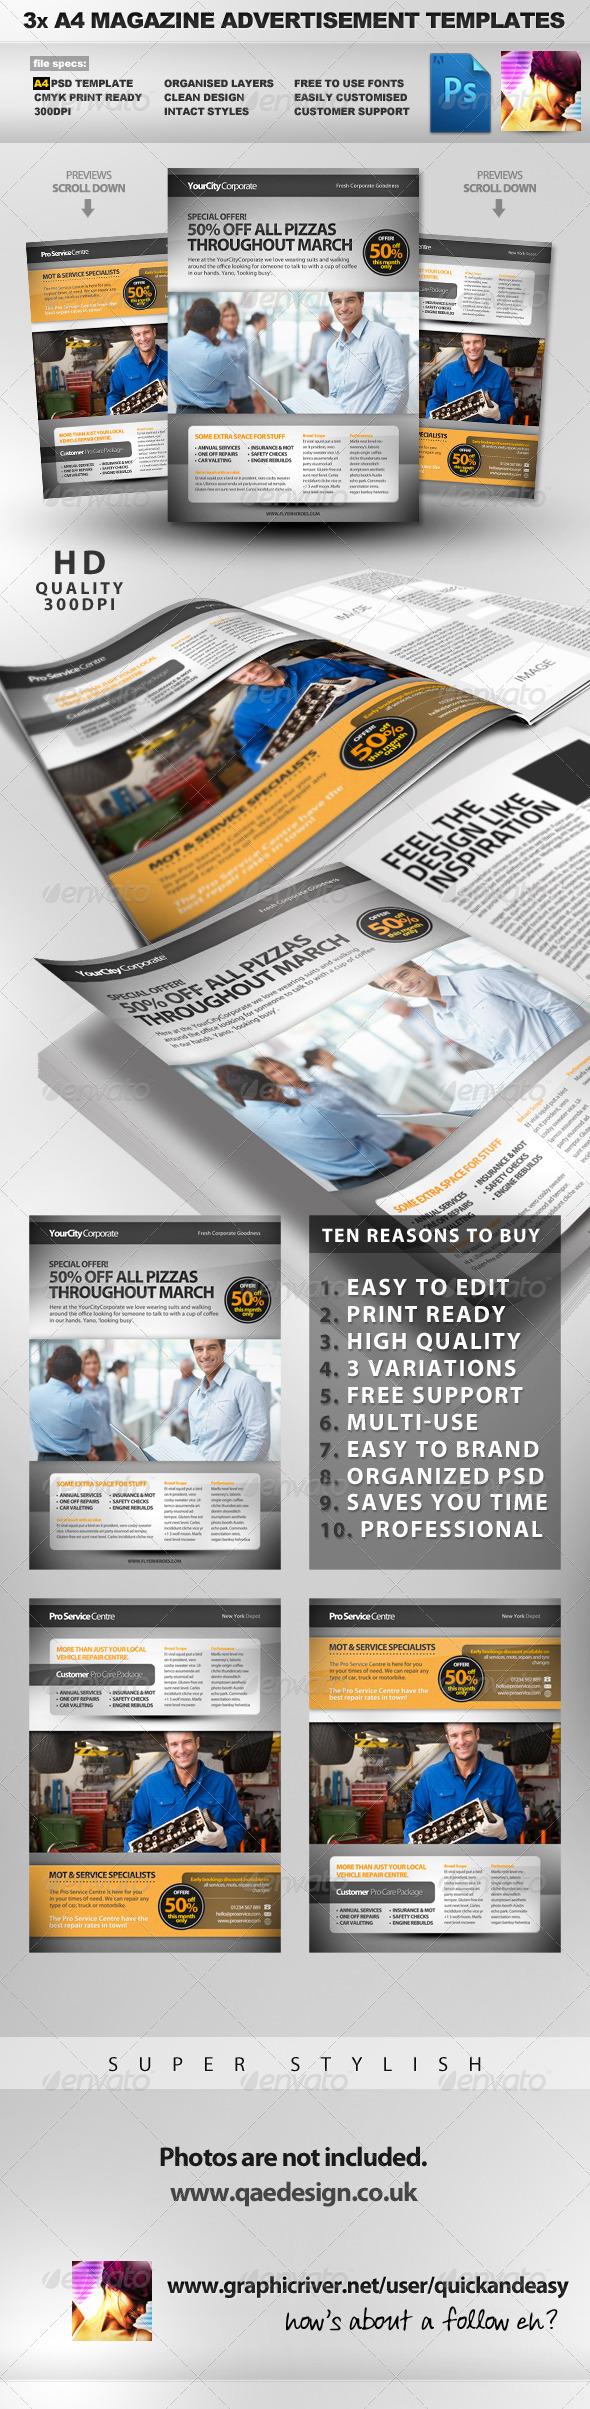 GraphicRiver Pro Services A4 Magazine Advertisement Templates 2 1684329